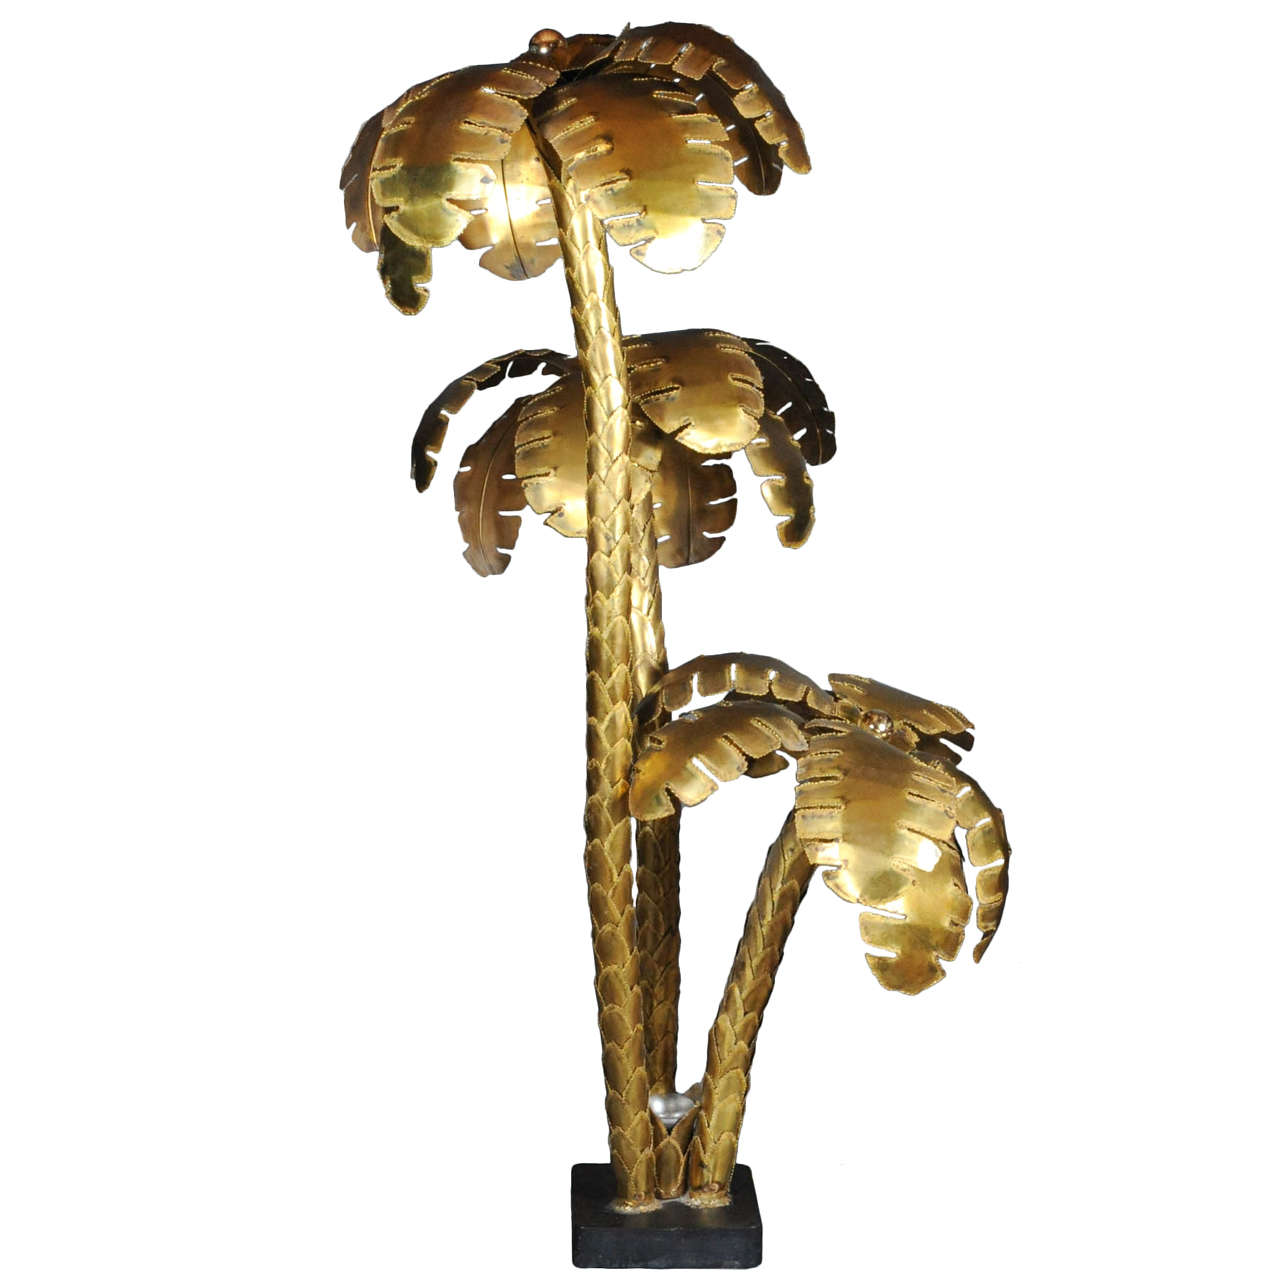 Huge 6 feet tall copper 3 trunk maison jansen palm tree for Tall tree floor lamp